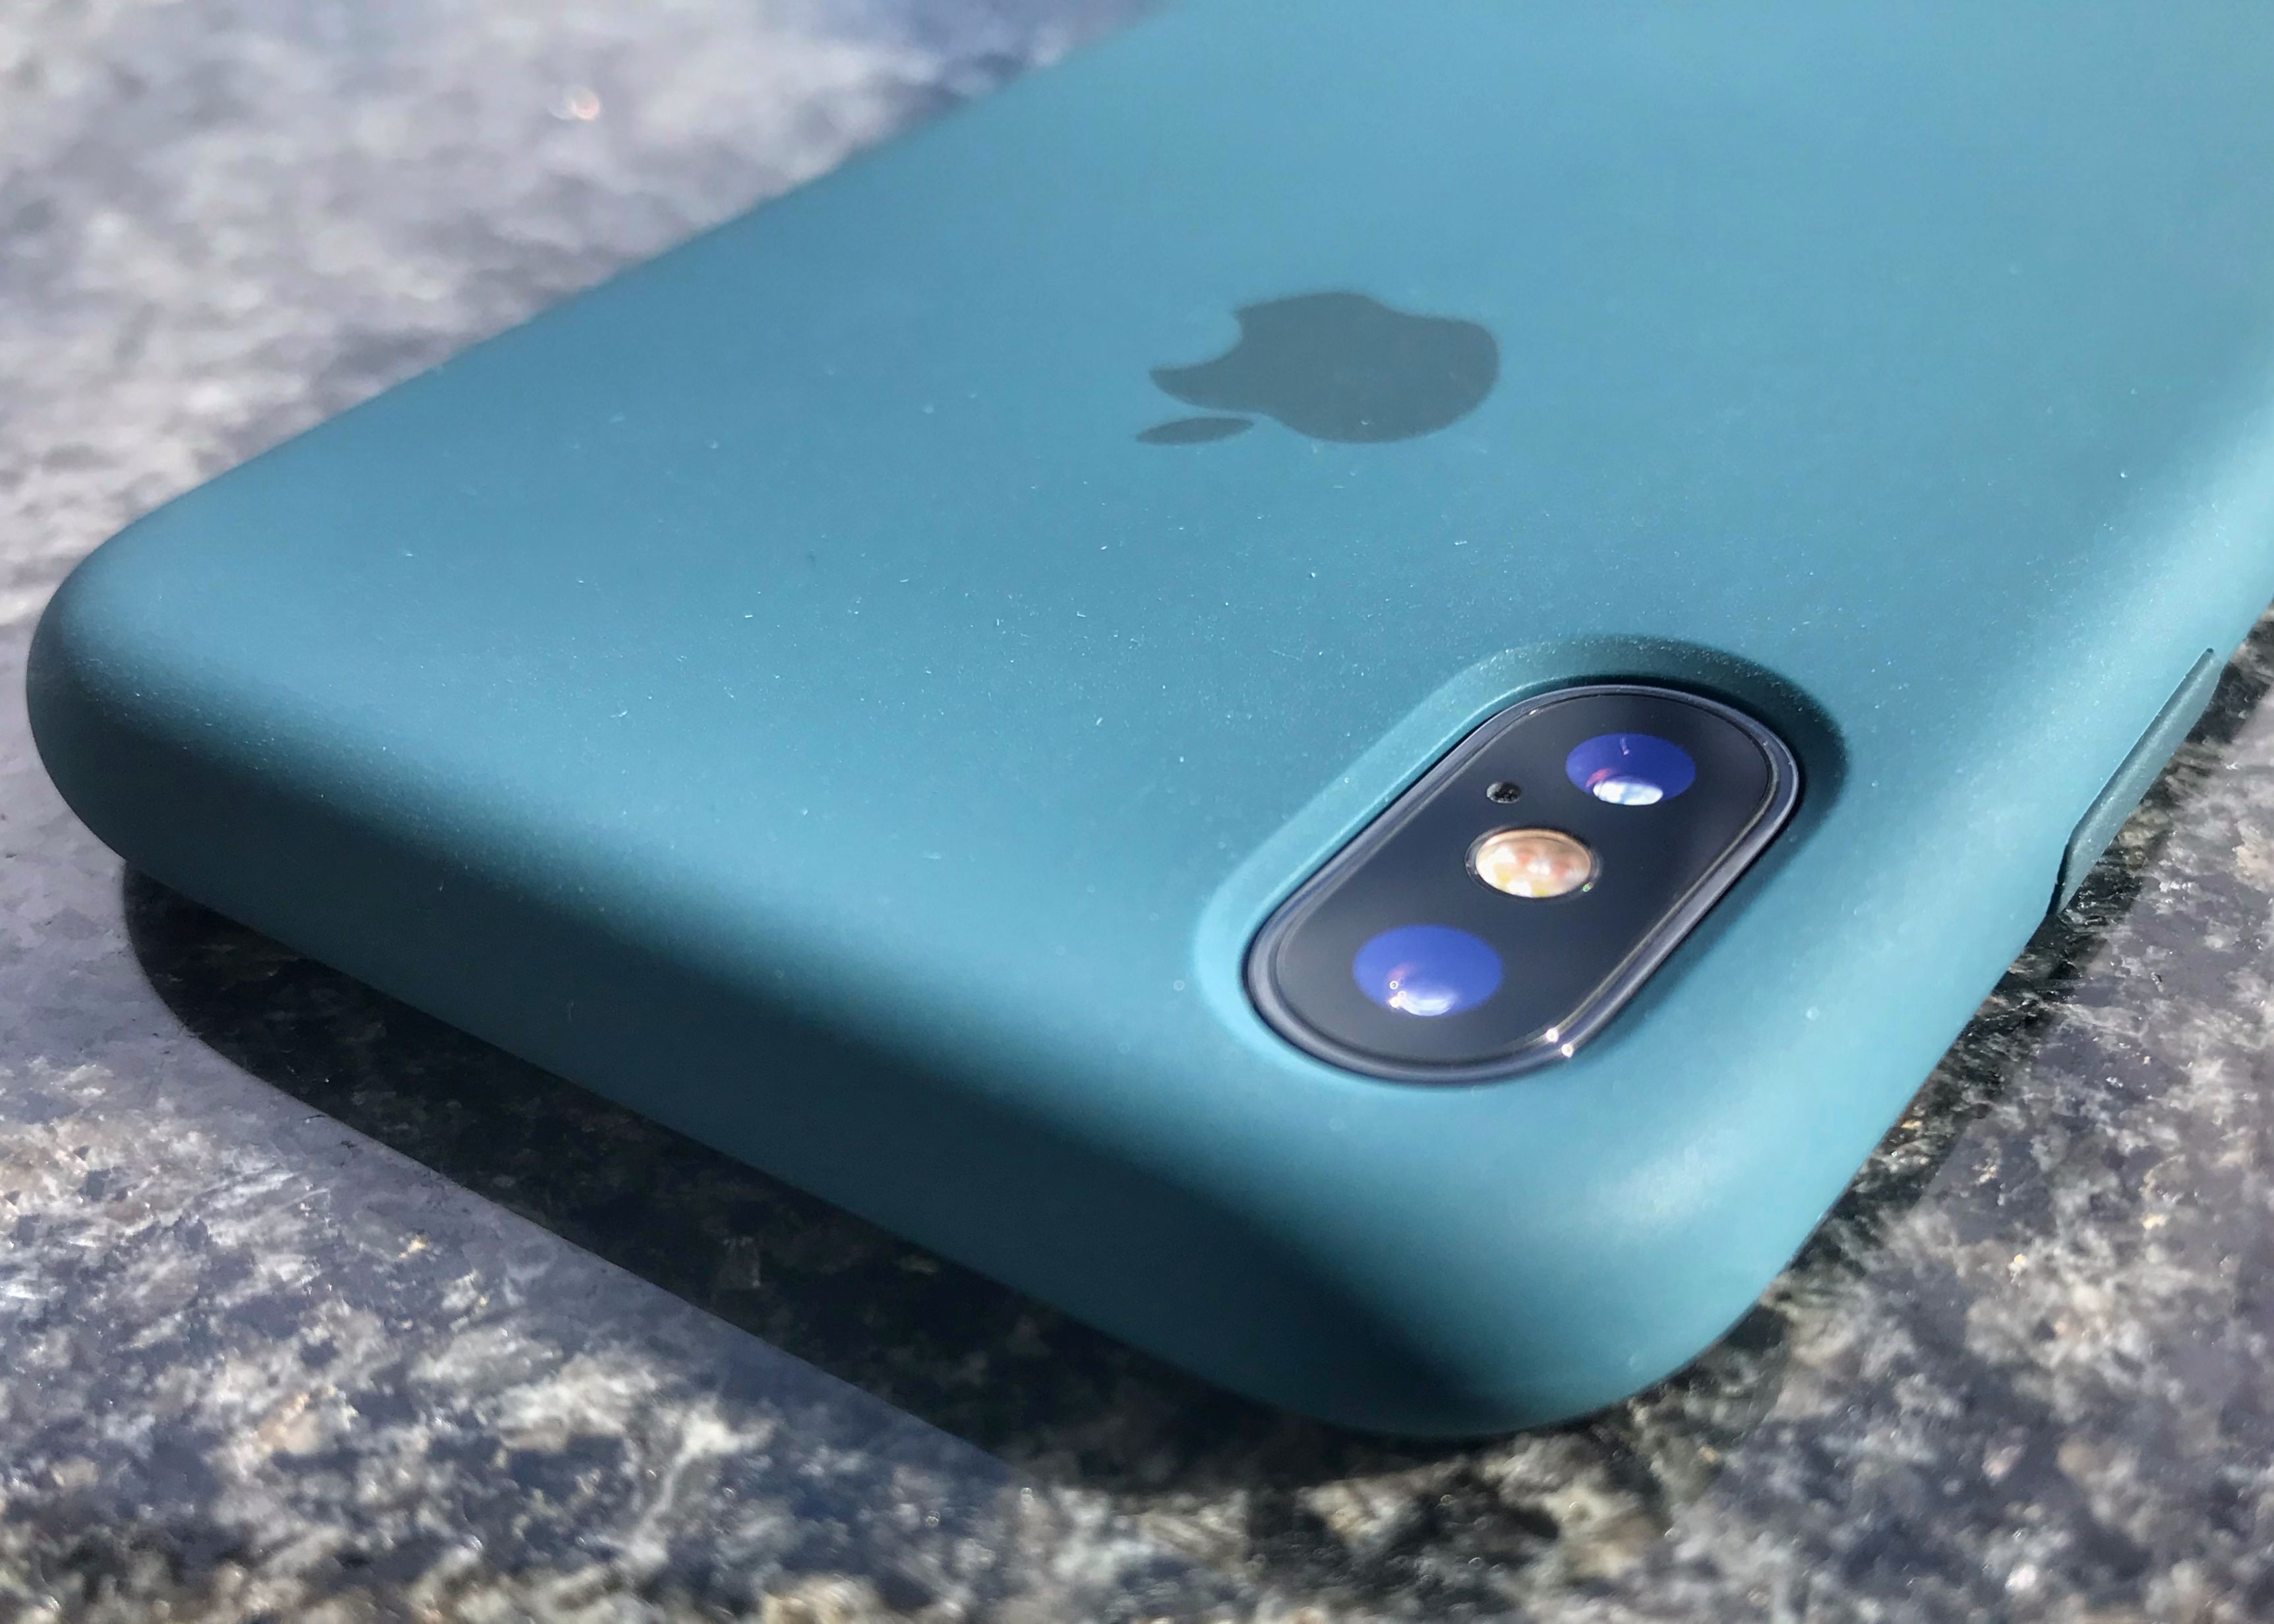 buy online c7a6d 39966 iPhone X cosmos blue silicone cover | iPhone X | Apple magic, Magic ...